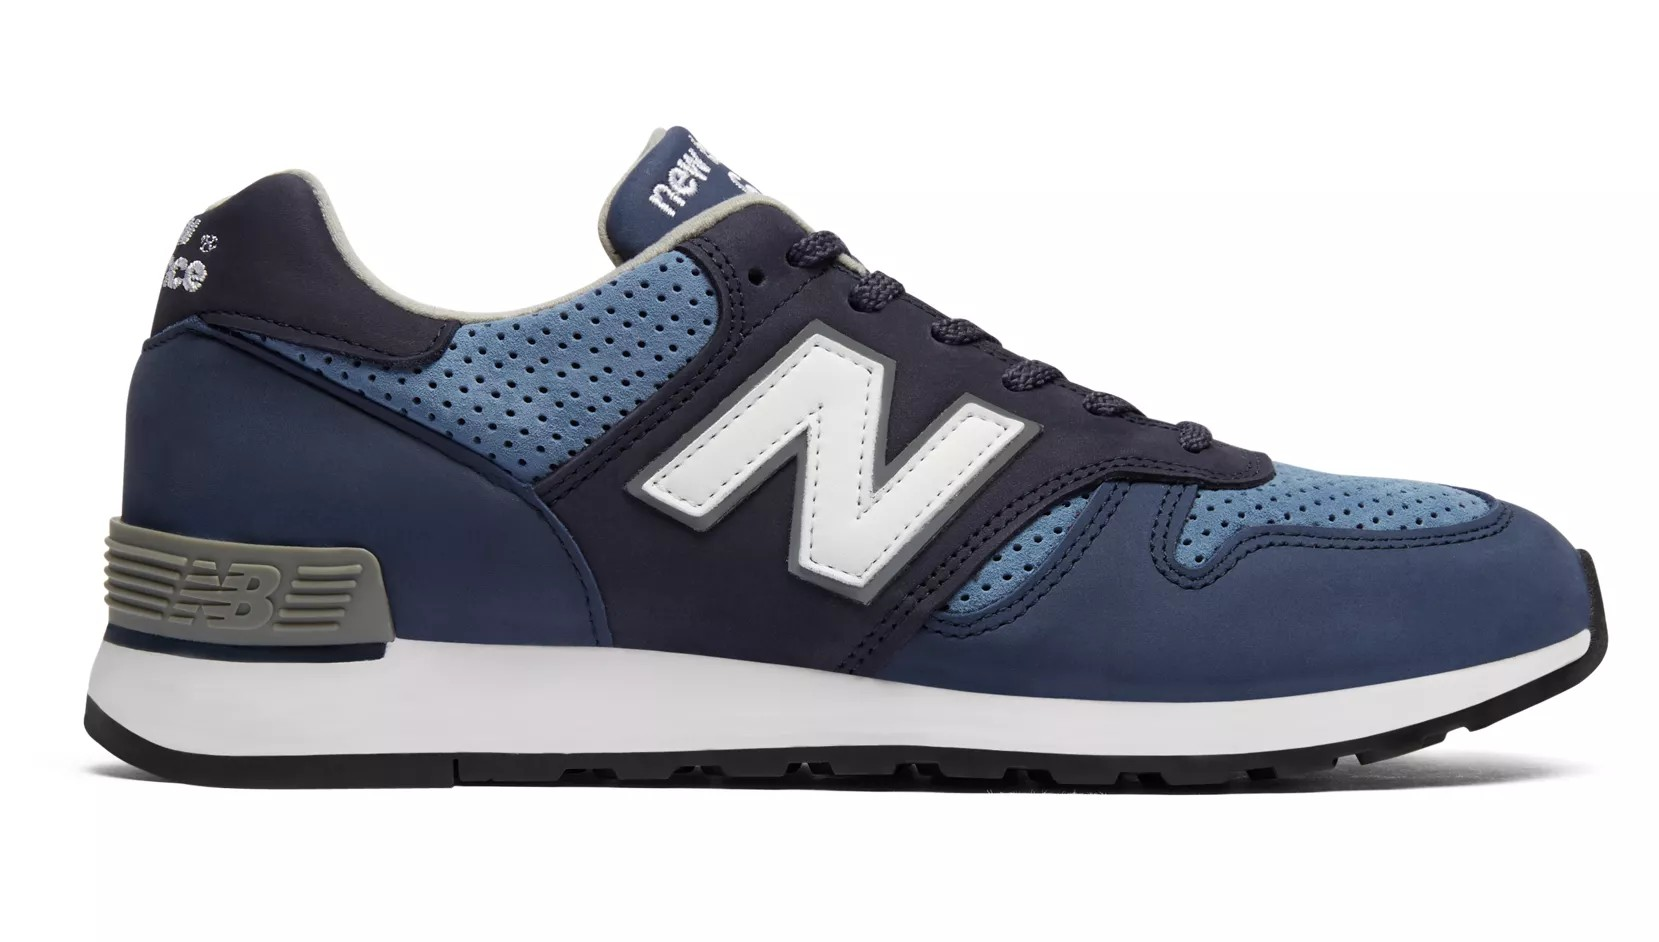 New Balance 670 Made in UK Bluesman